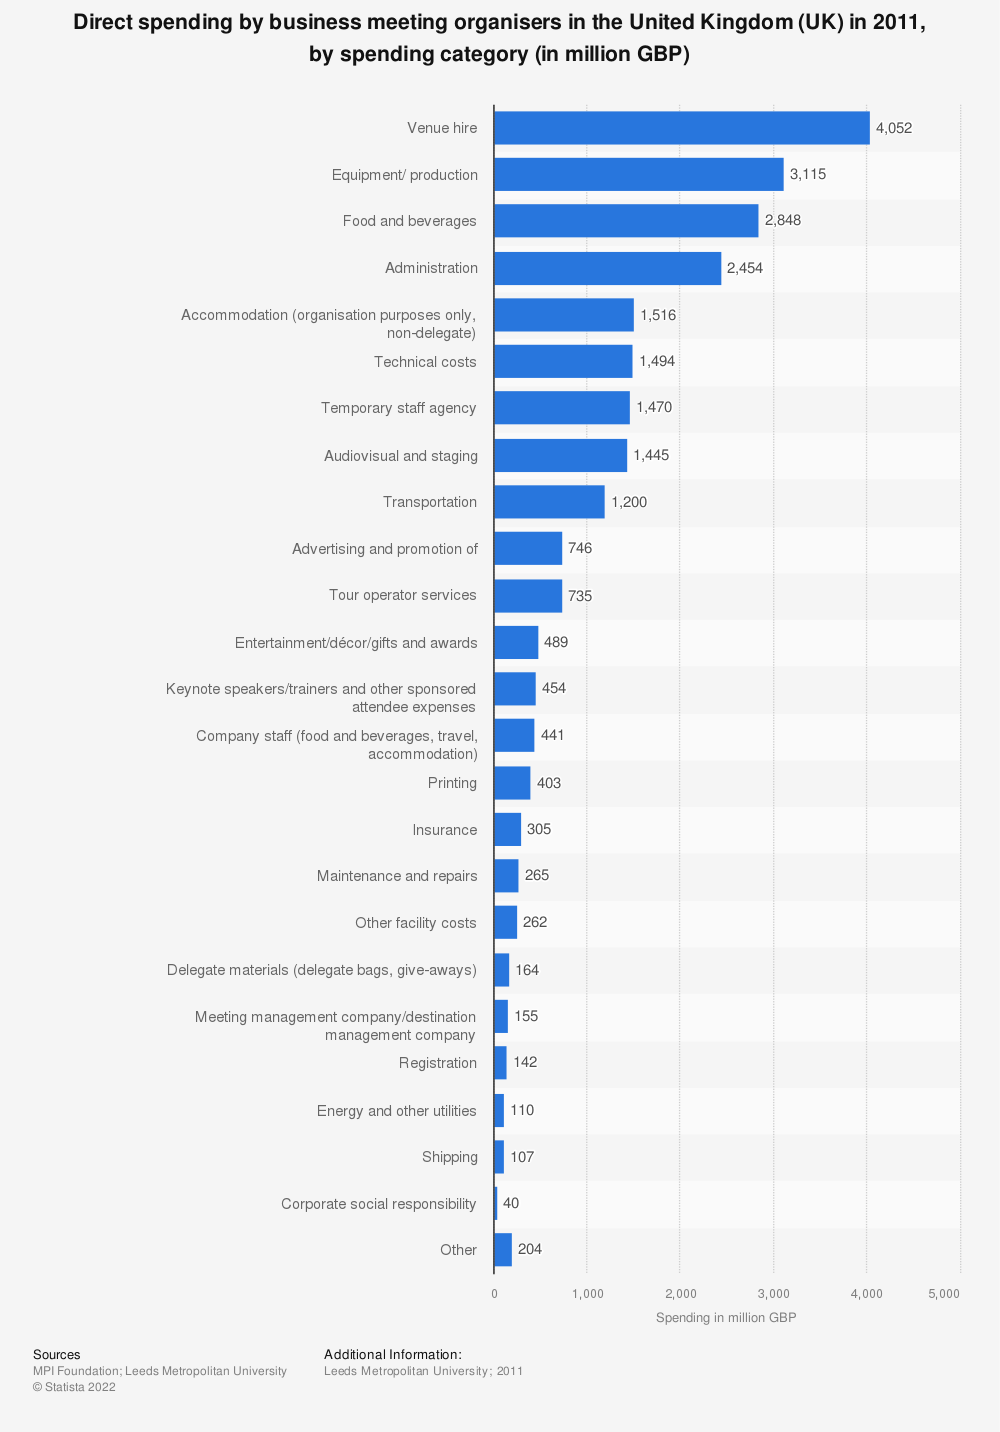 Statistic: Direct spending by business meeting organisers in the United Kingdom (UK) in 2011, by spending category (in million GBP) | Statista